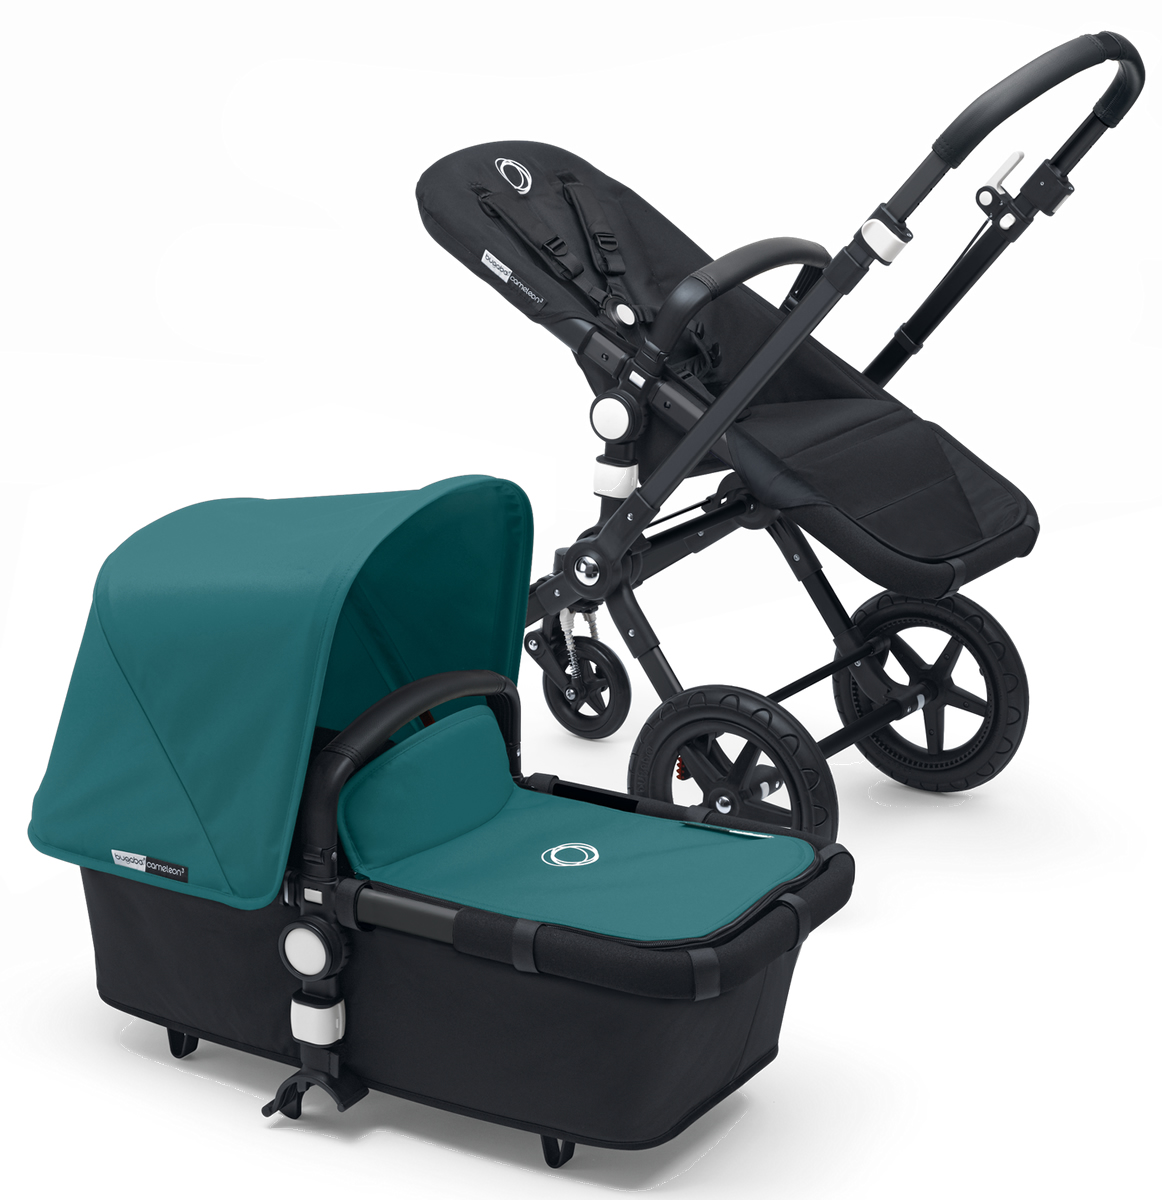 Bugaboo Cameleon 3 Stroller - All Black/Petrol Blue